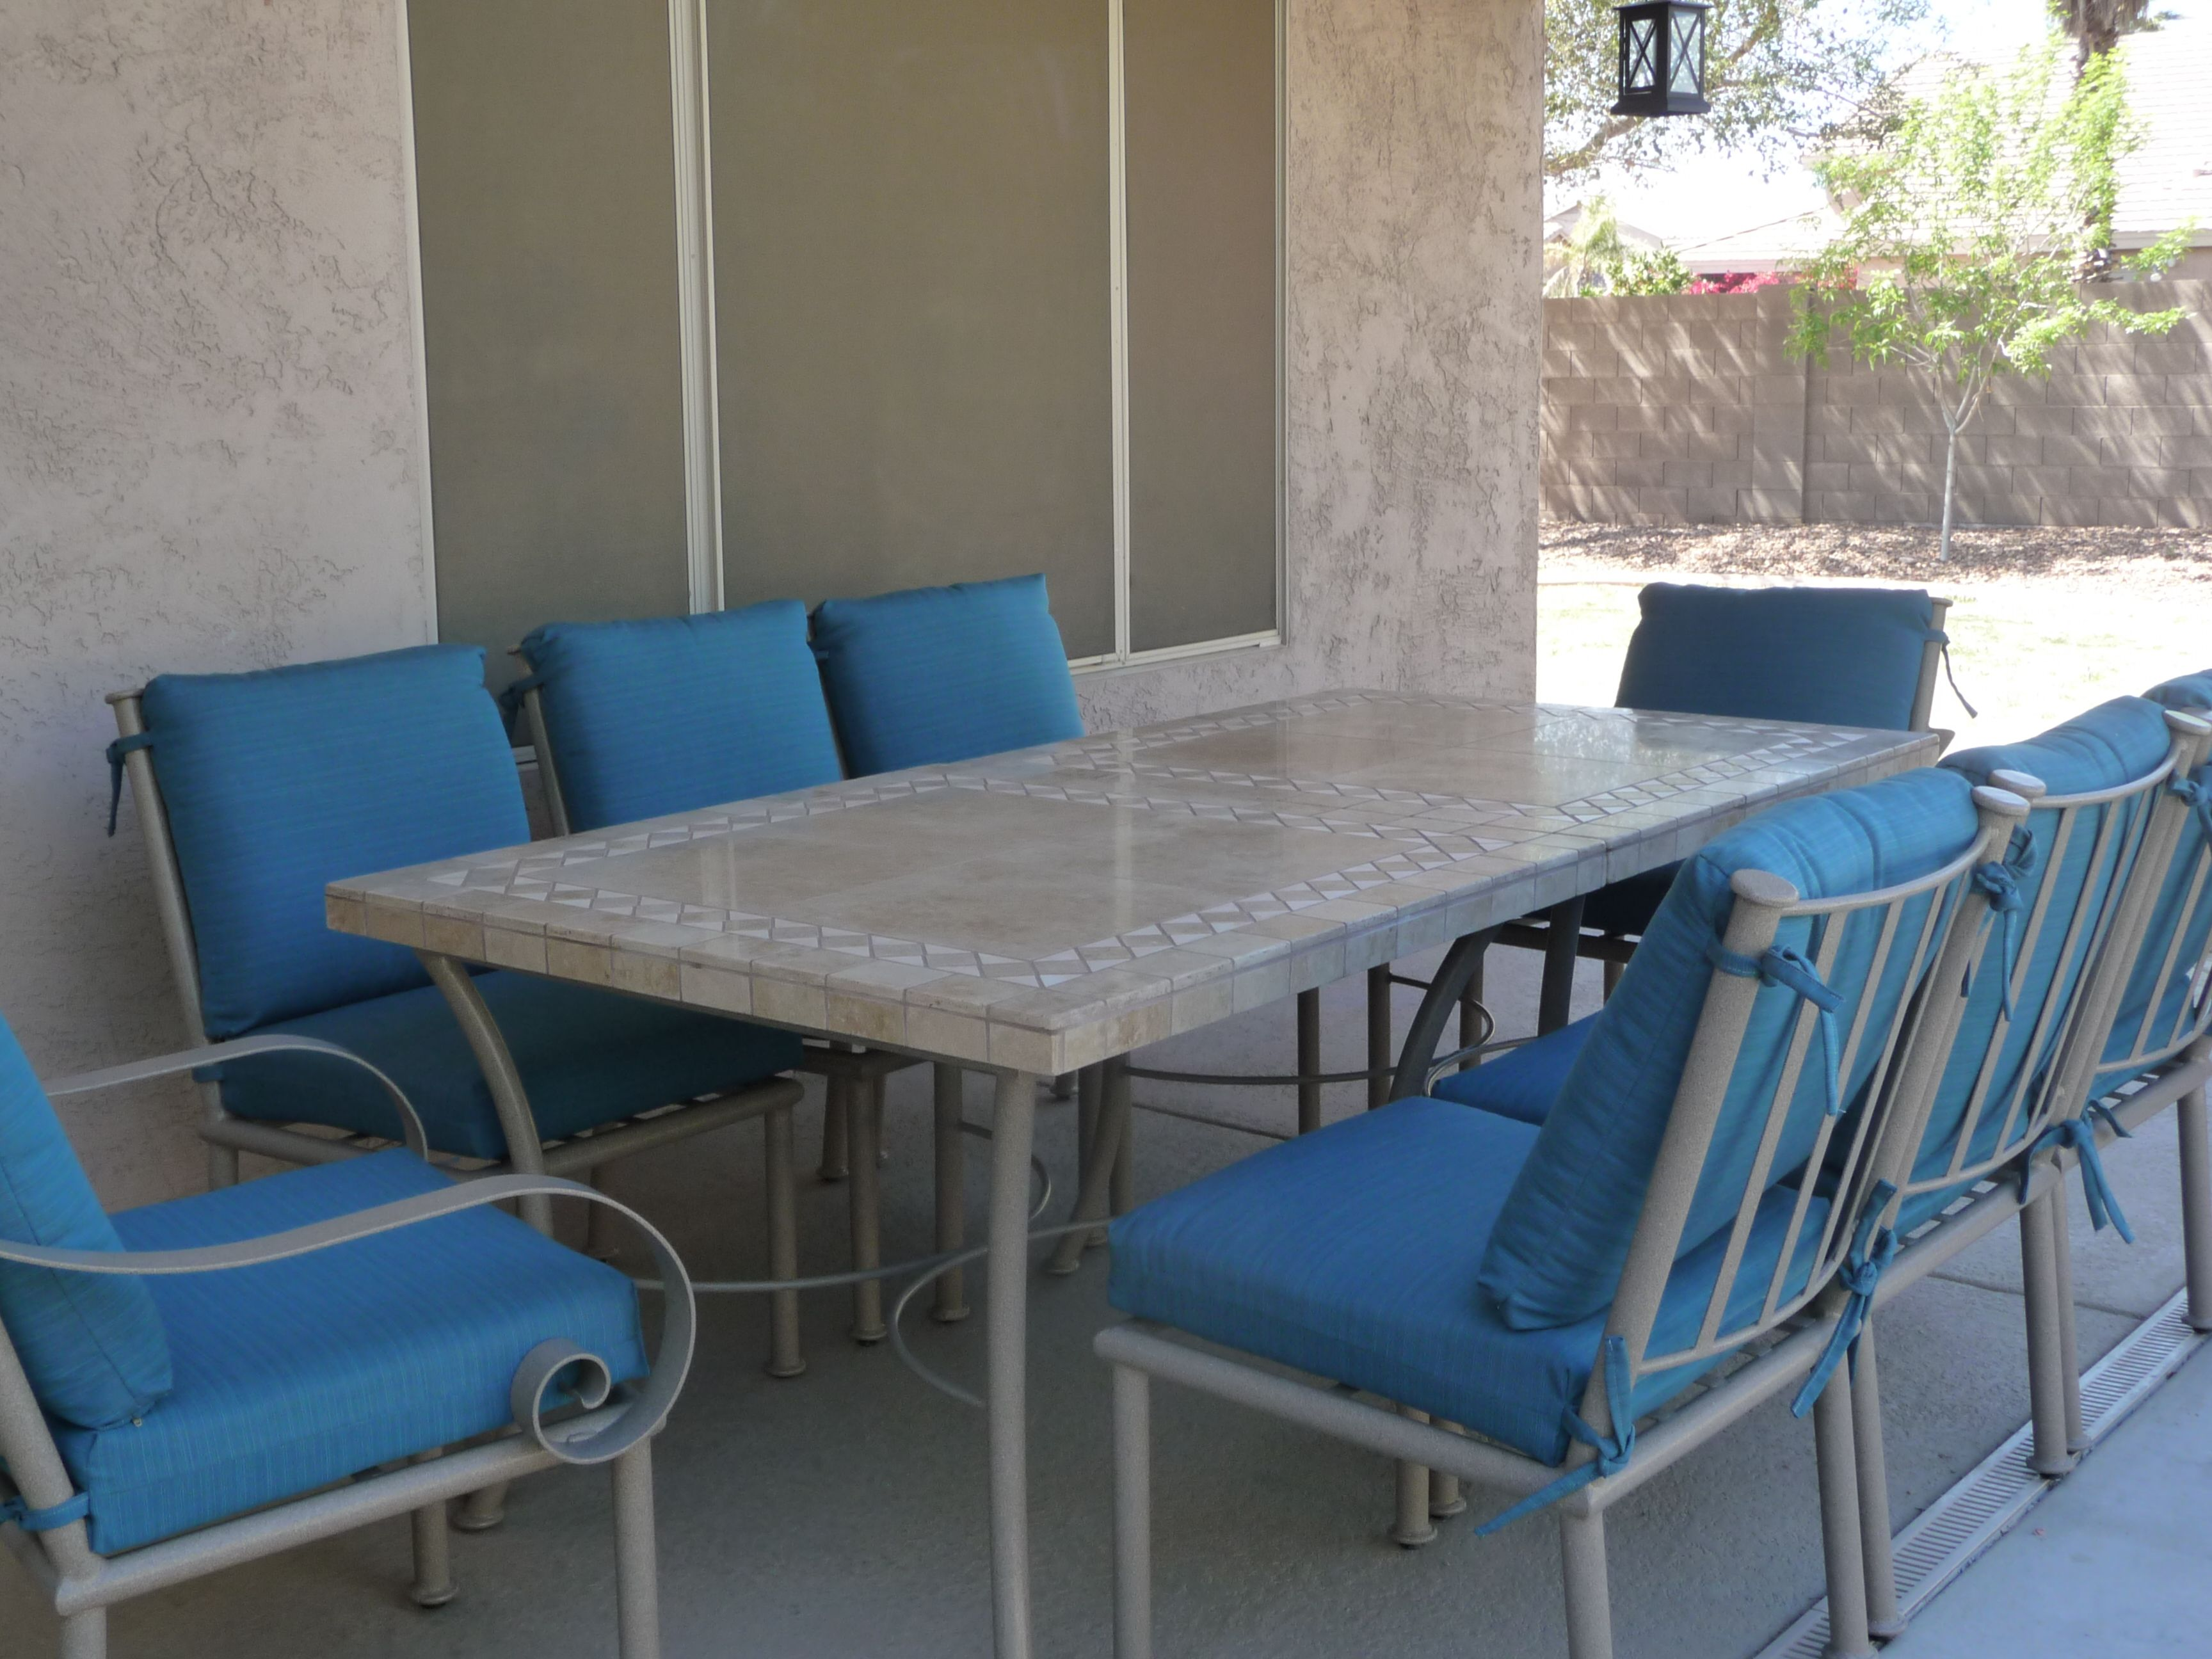 kor location commercial relaxed furniture outdoor phoenix patio sets dining